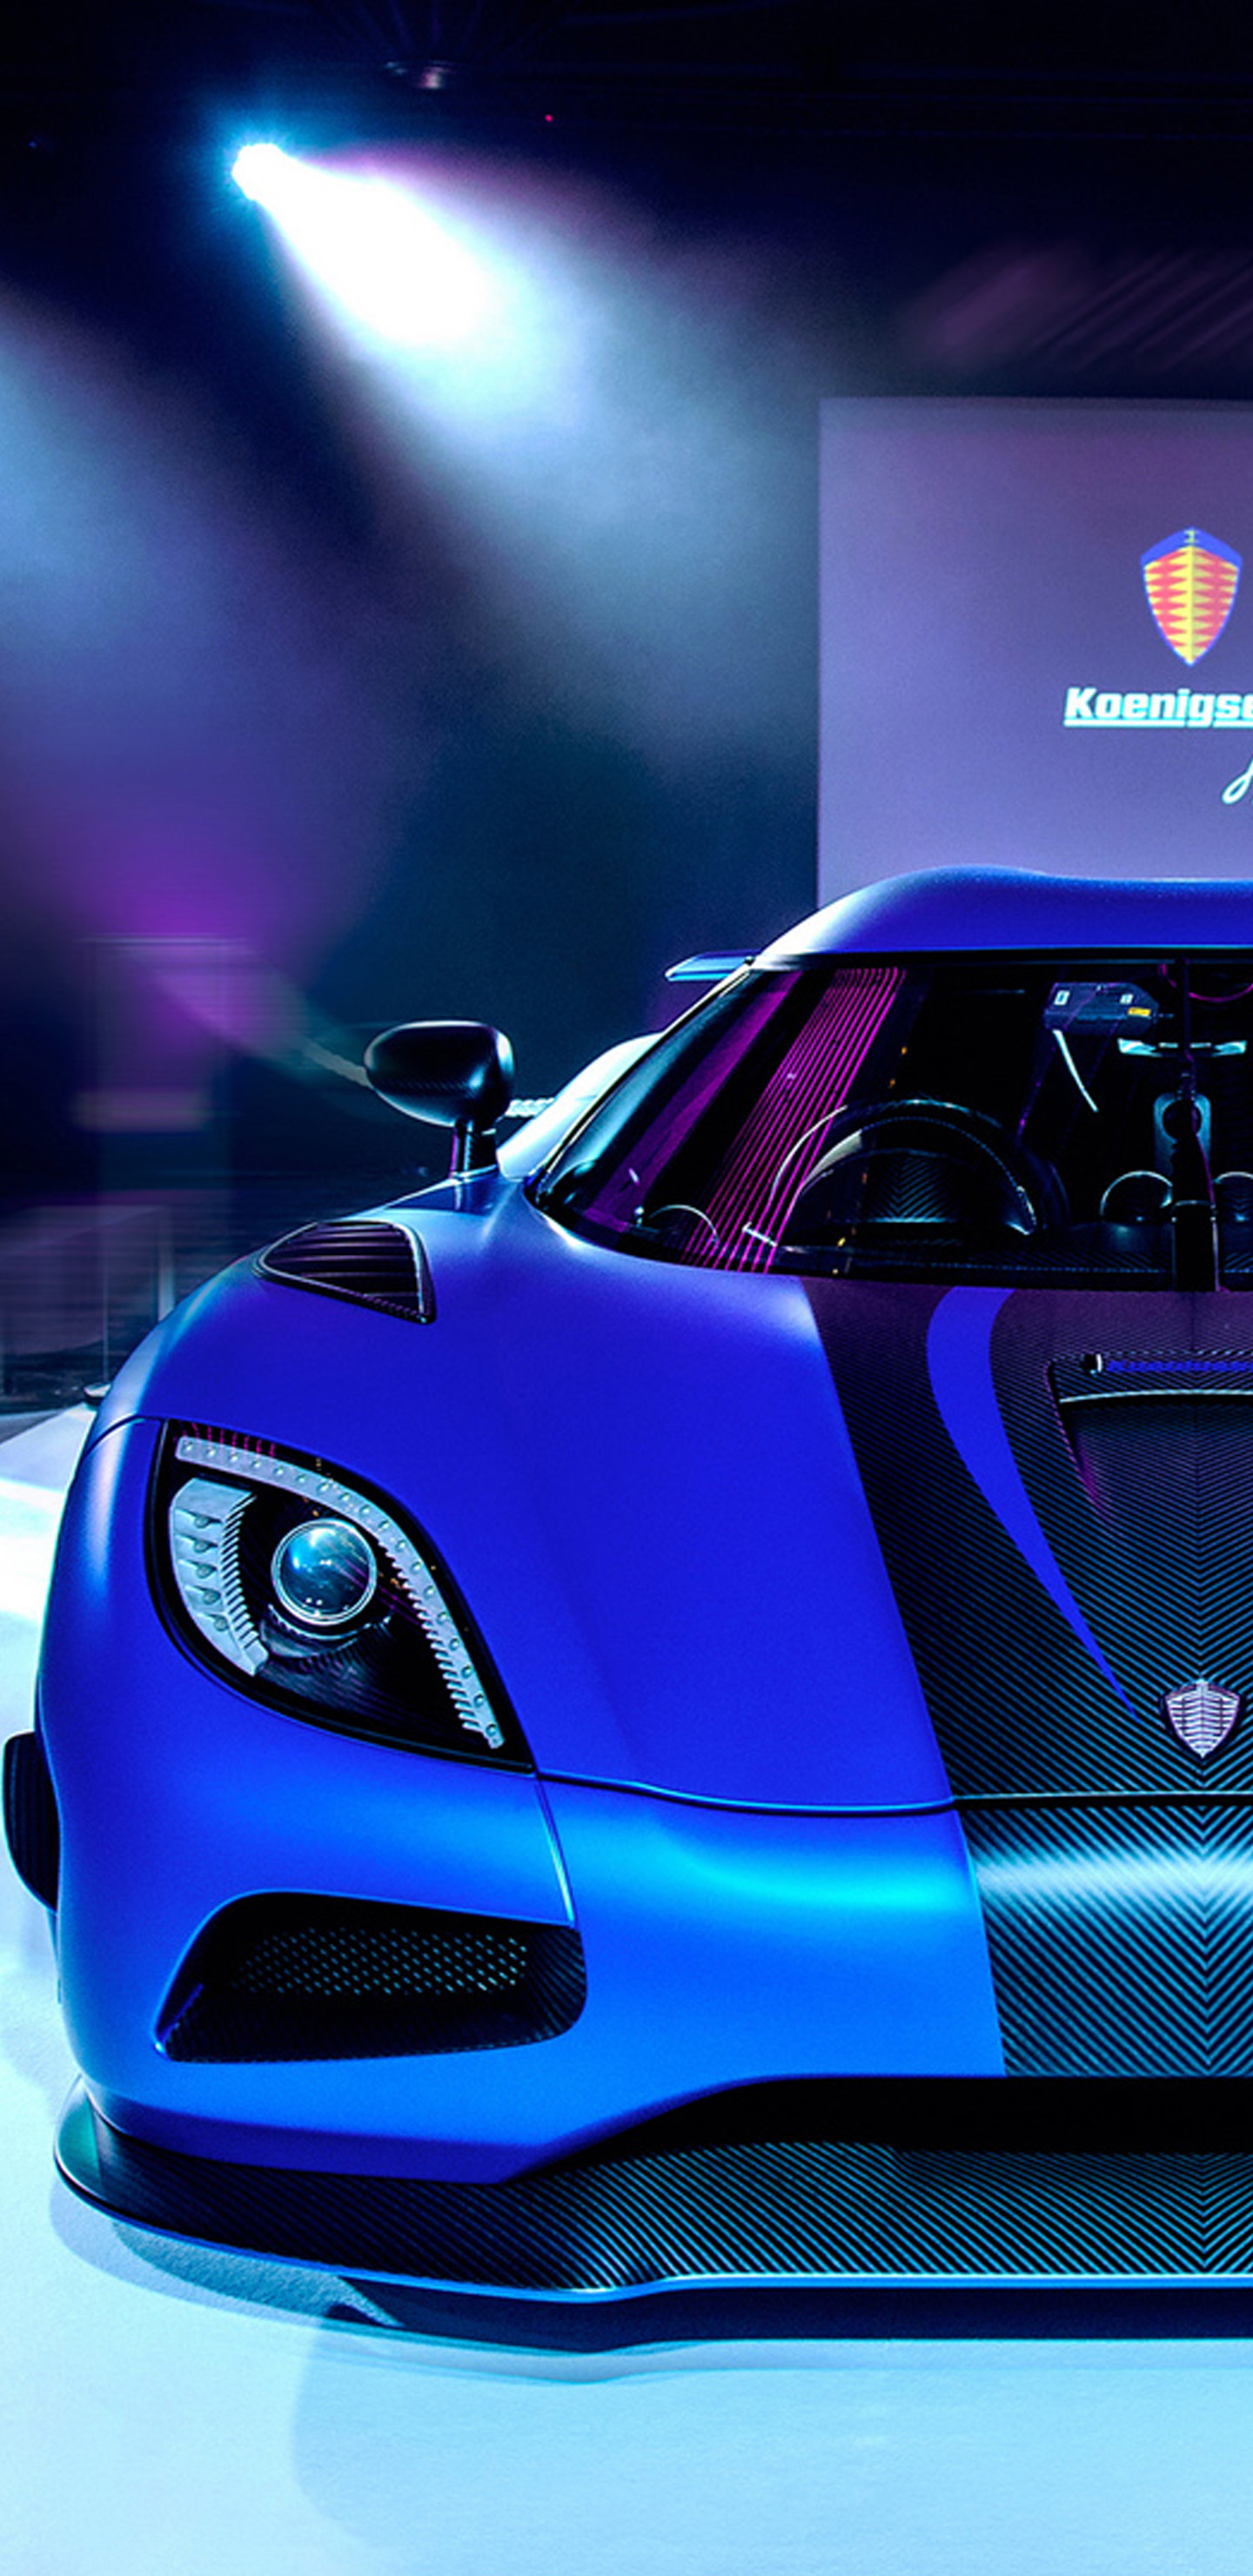 Koenigse Agera Blue Sports Car Galaxy S8 Wallpapers Car Wallpaper For Samsung S8 15853 Hd Wallpaper Backgrounds Download